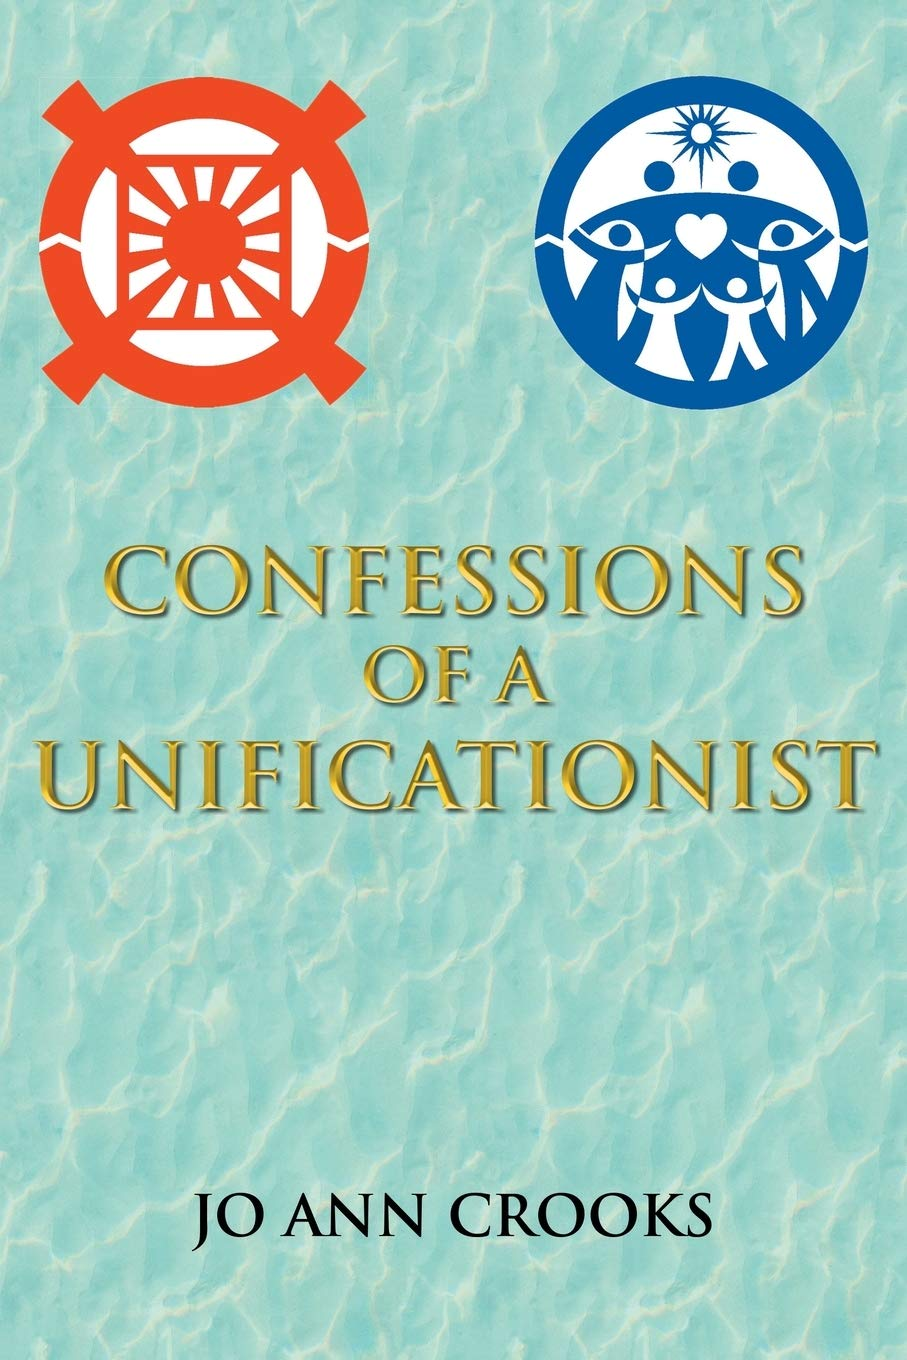 Confessions of a Unificationist